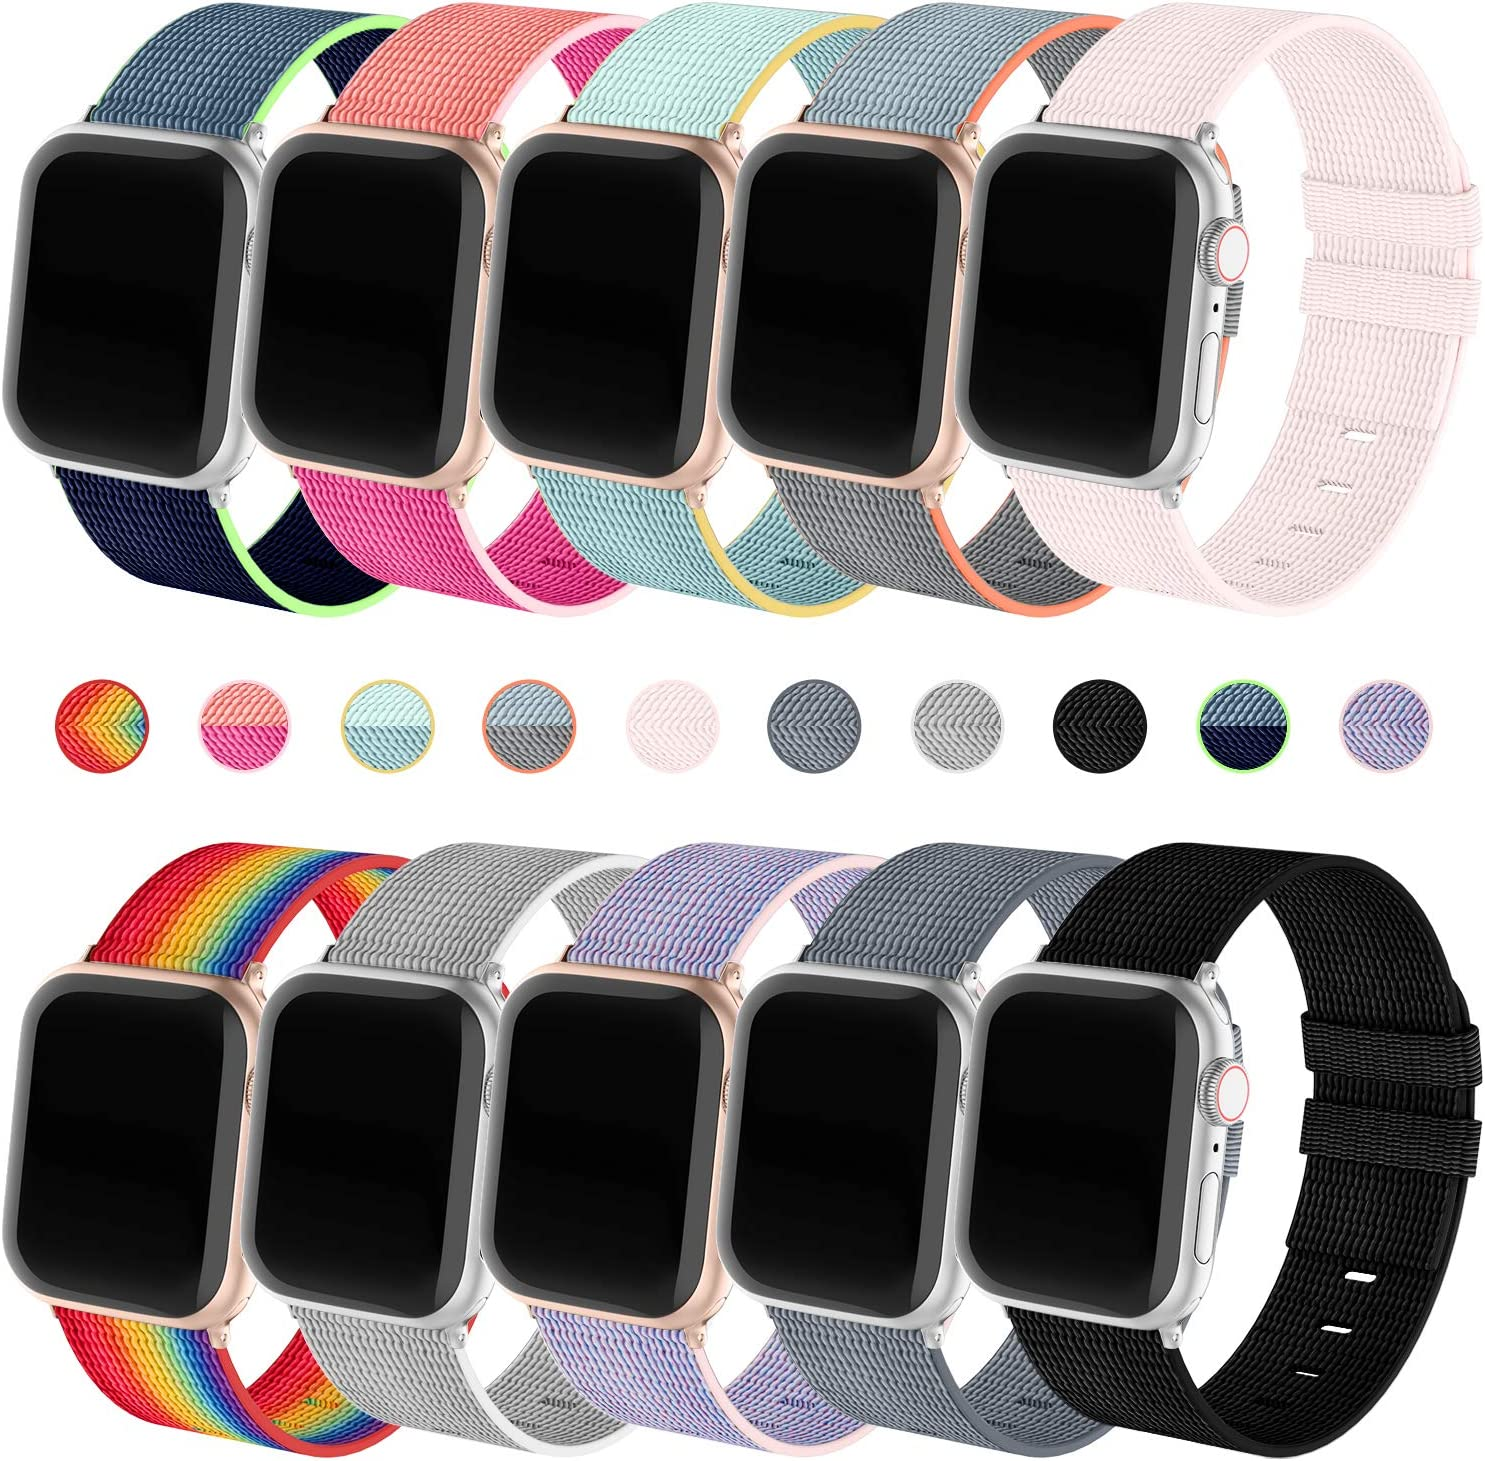 Recoppa 10 Pack Nylon Bands Compatible with Apple Watch Band 38mm 40mm 44mm 42mm Soft Sport Loop Breathable Strap Replacement for iWatch Series 6 5 4 3 2 1